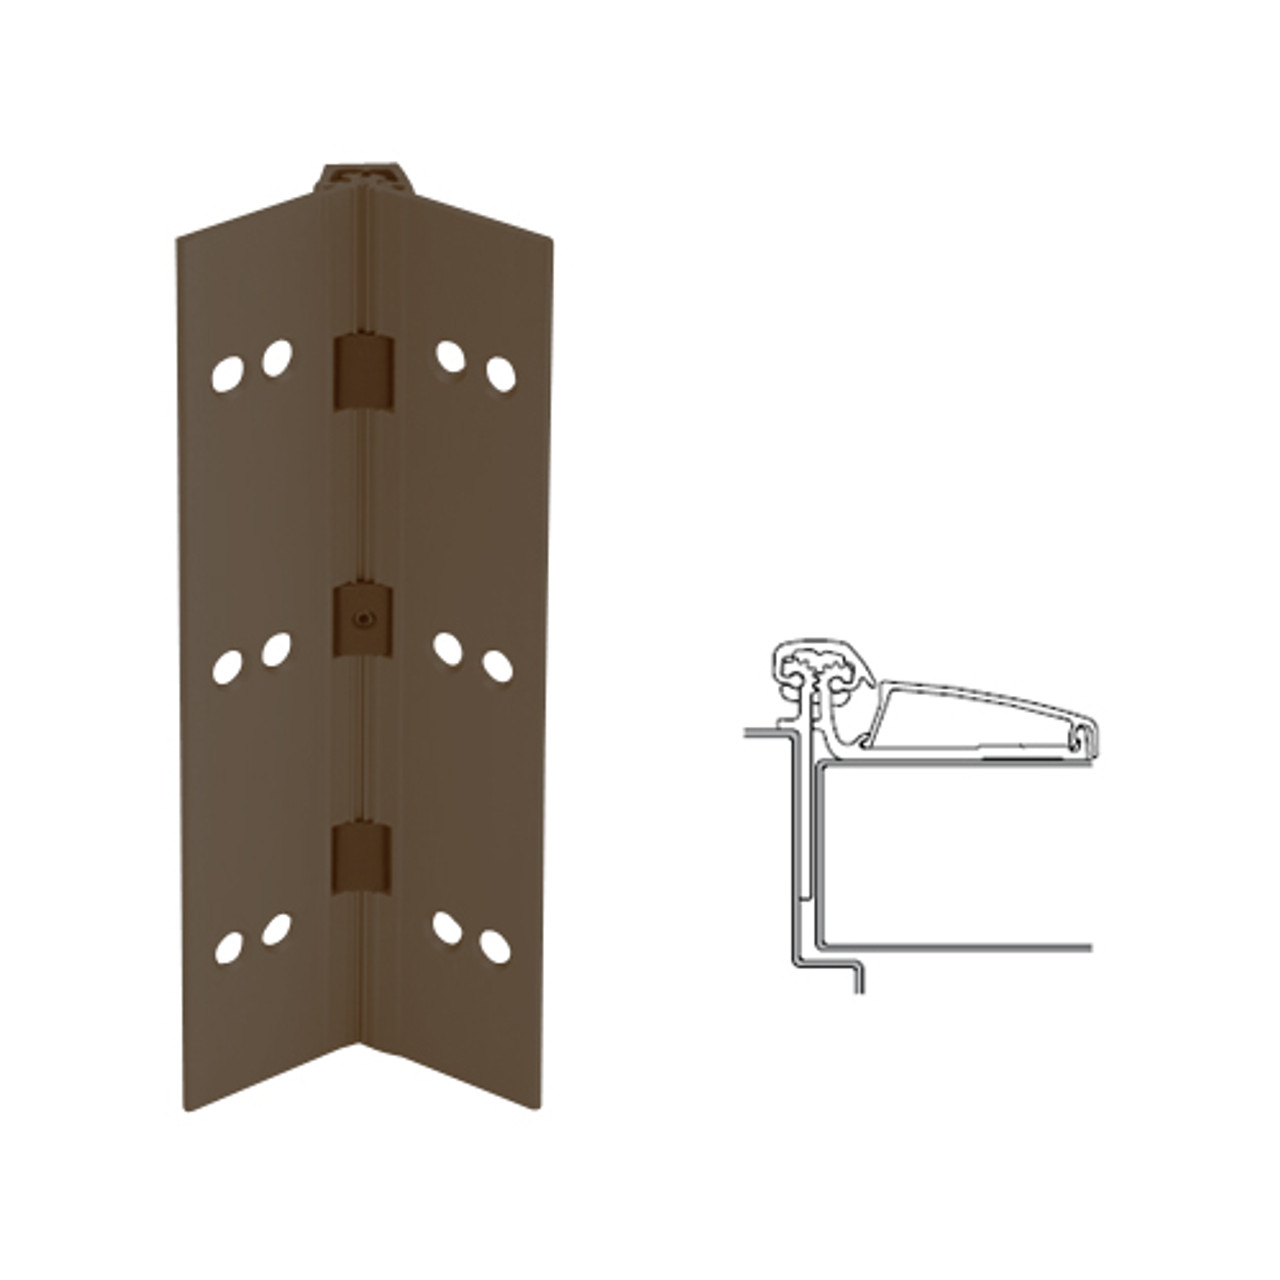 045XY-313AN-83 IVES Adjustable Half Surface Continuous Geared Hinges in Dark Bronze Anodized